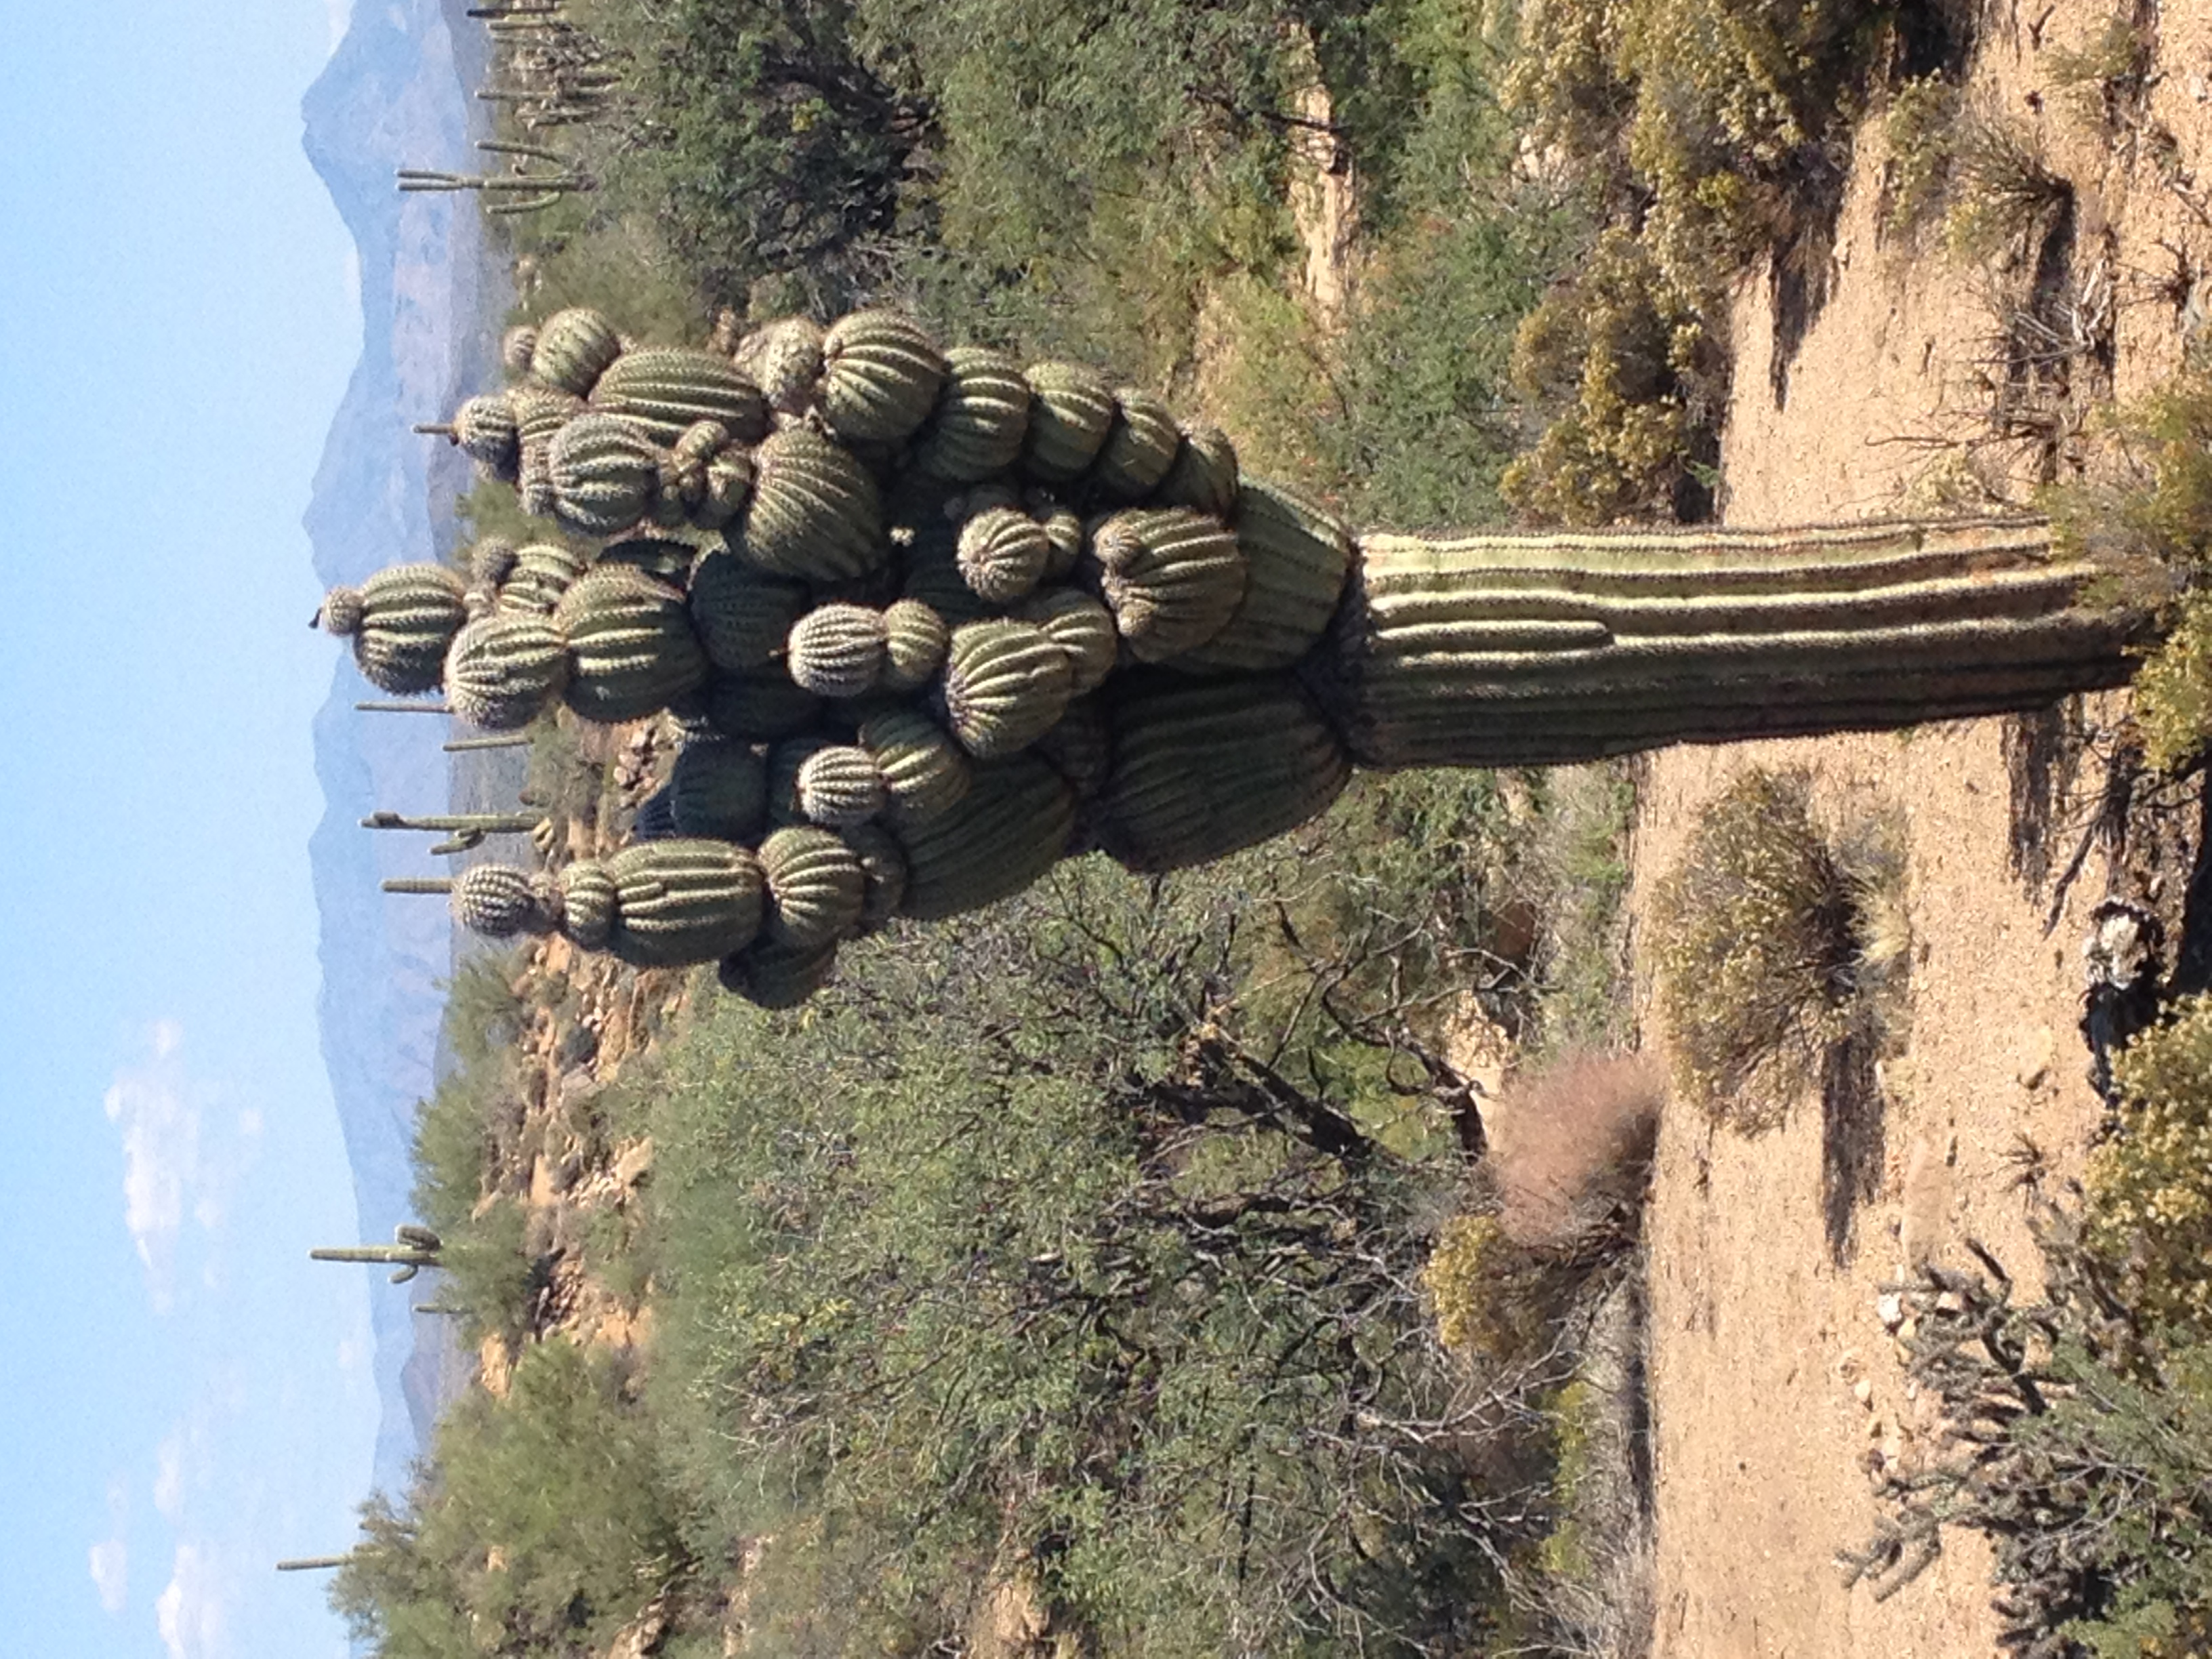 Michelin Man Saguaro